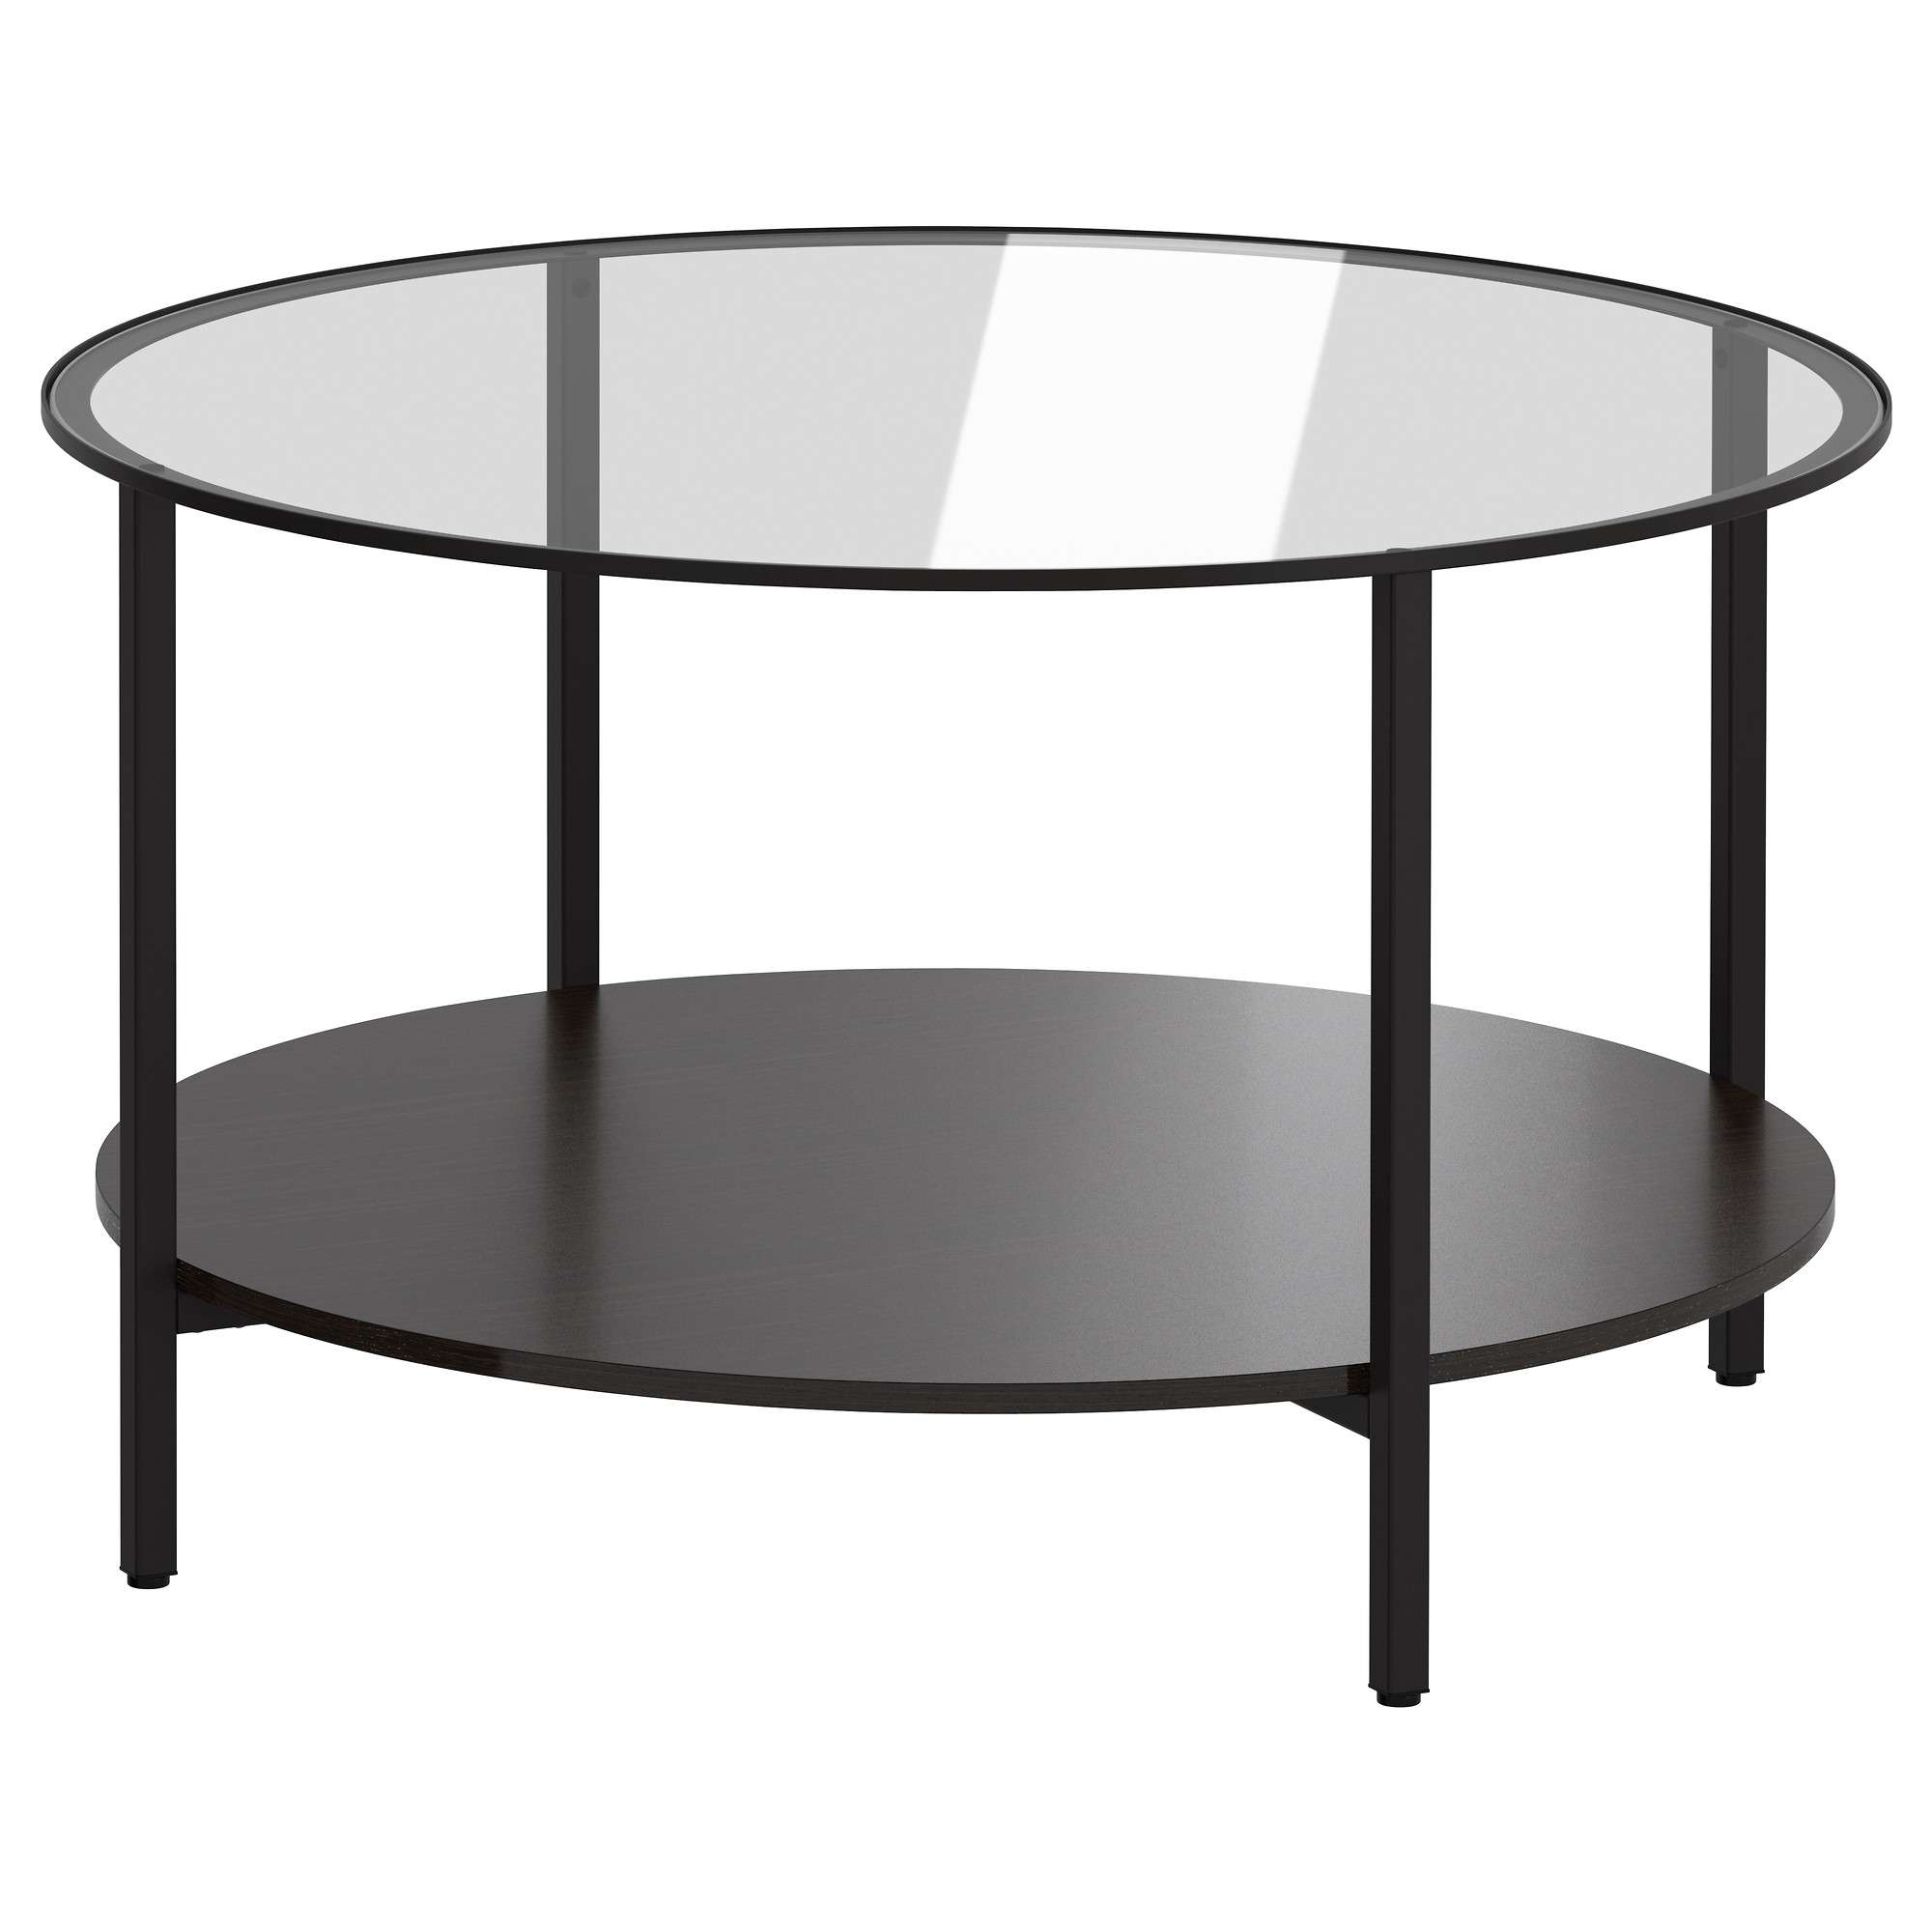 Vittsjö Coffee Table – Black Brown/glass – Ikea In Latest Dark Glass Coffee Tables (Gallery 6 of 20)